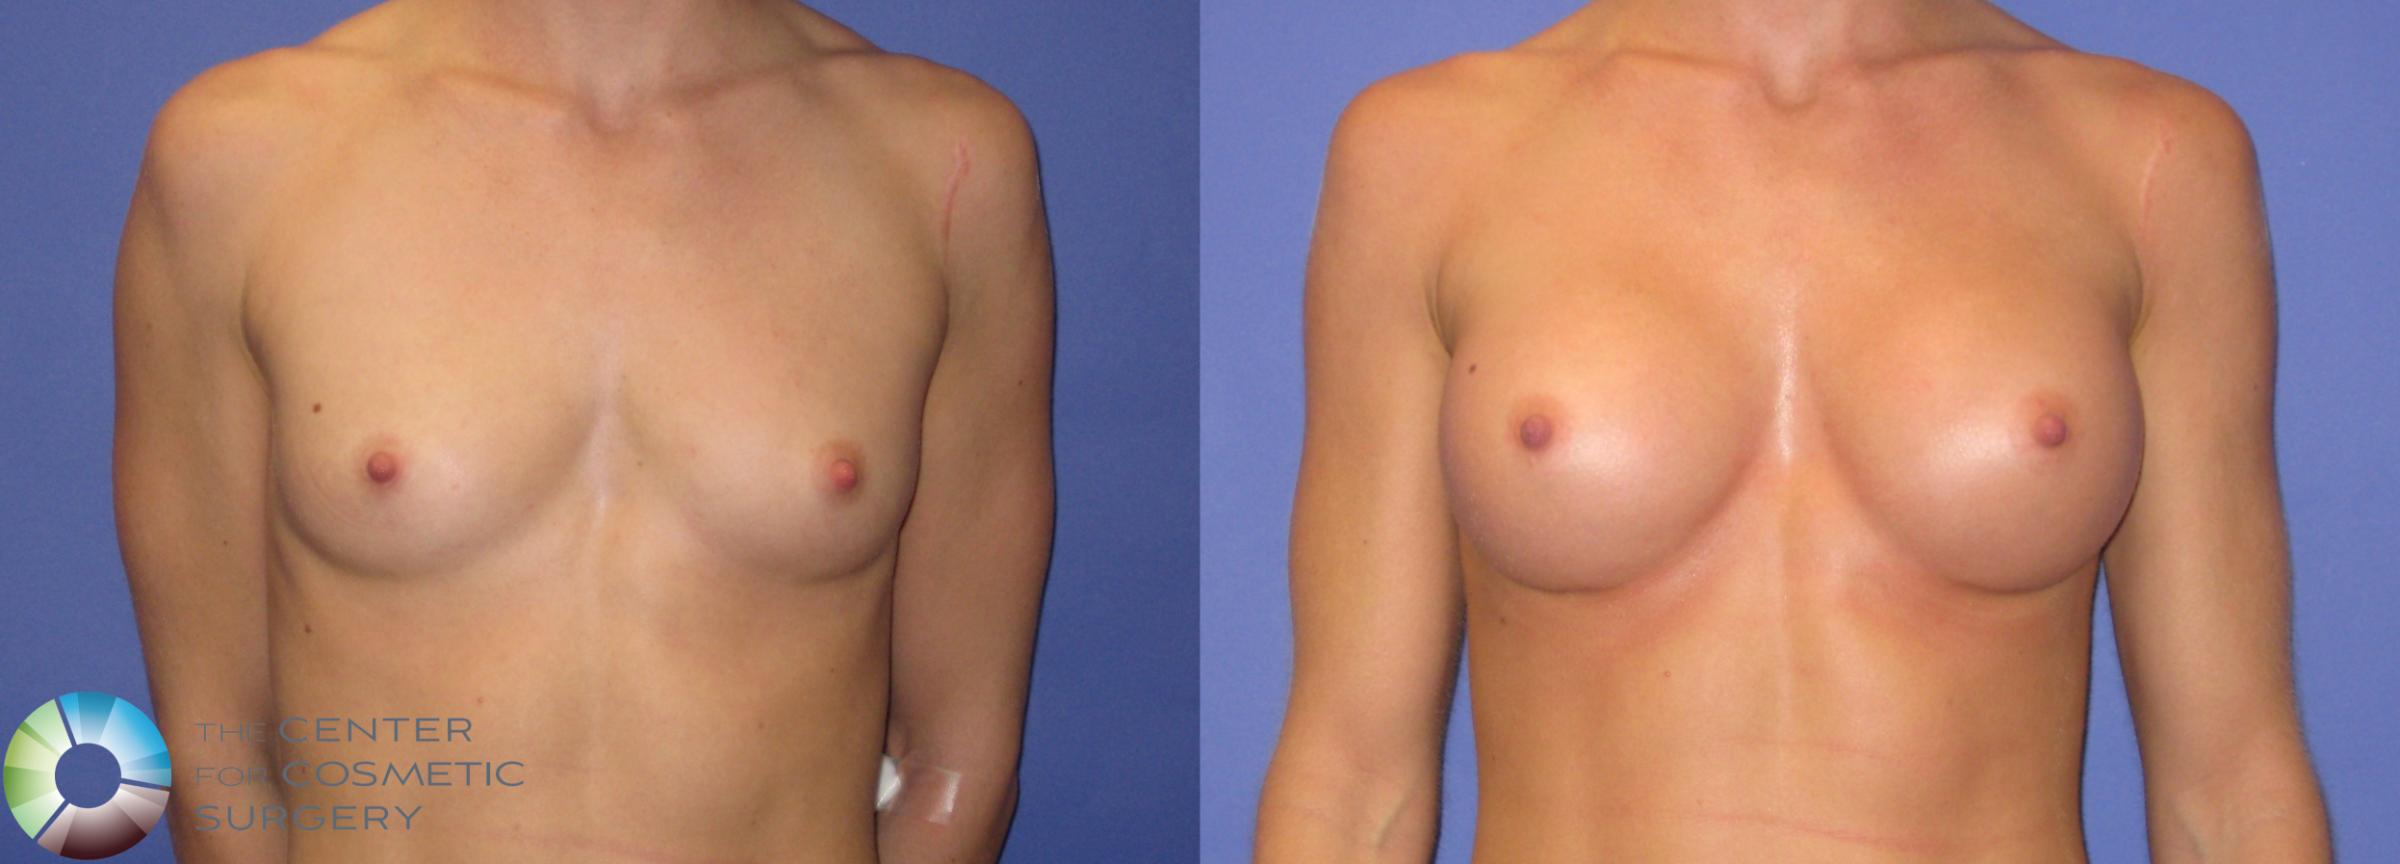 Breast Augmentation Case 307 Before & After View #1 | Golden, CO | The Center for Cosmetic Surgery